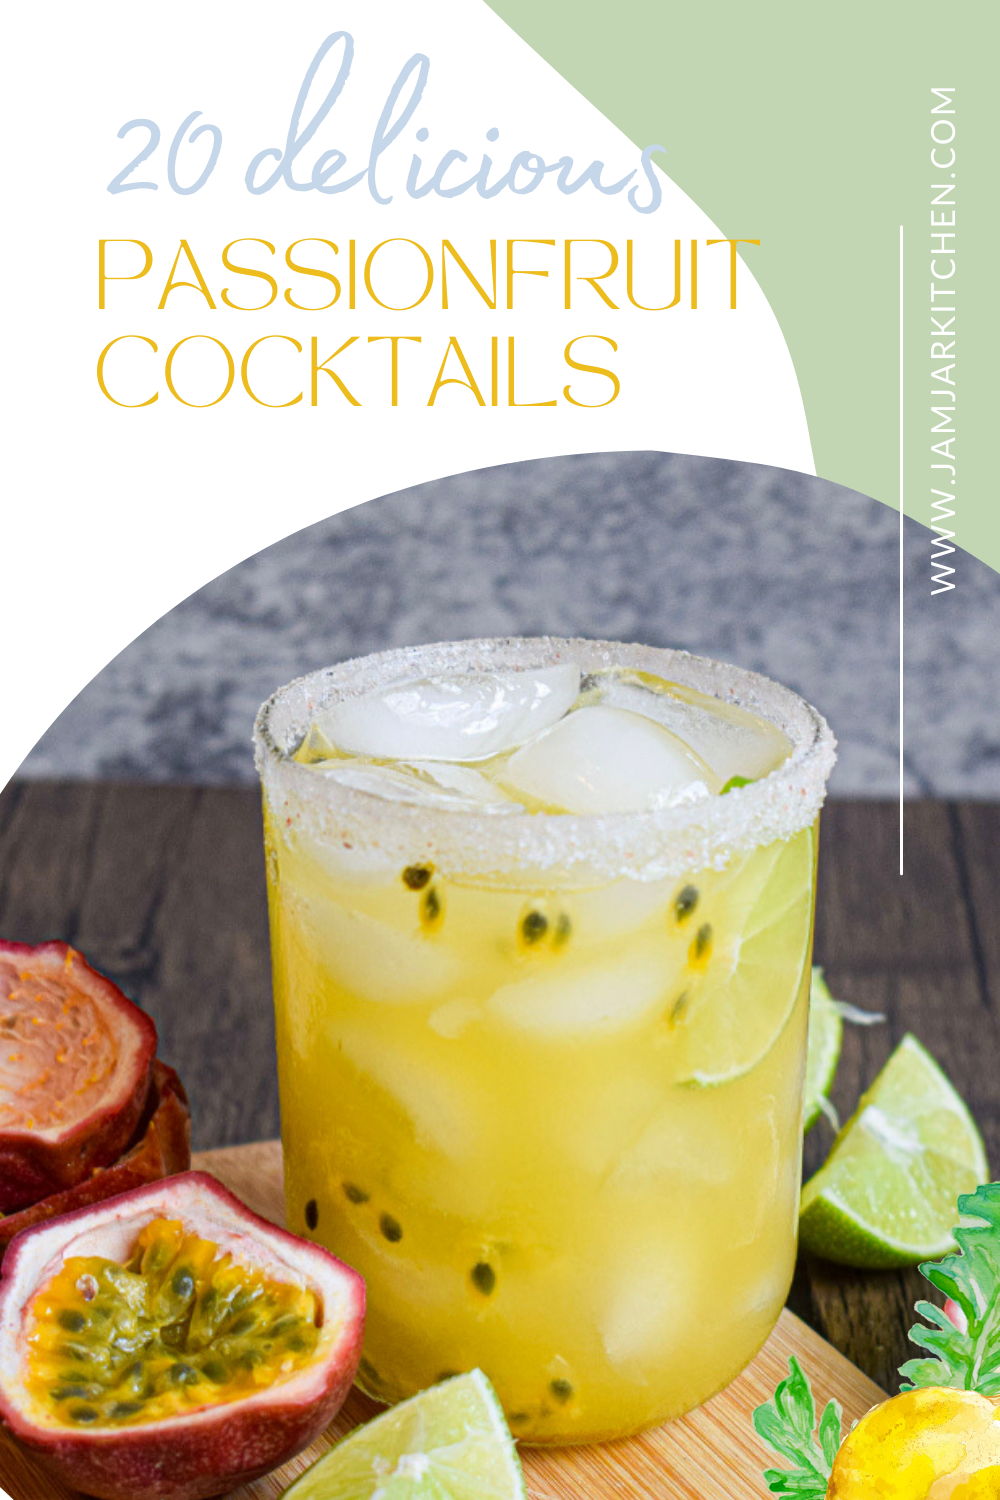 20 recipes for delicious passionfruit cocktails